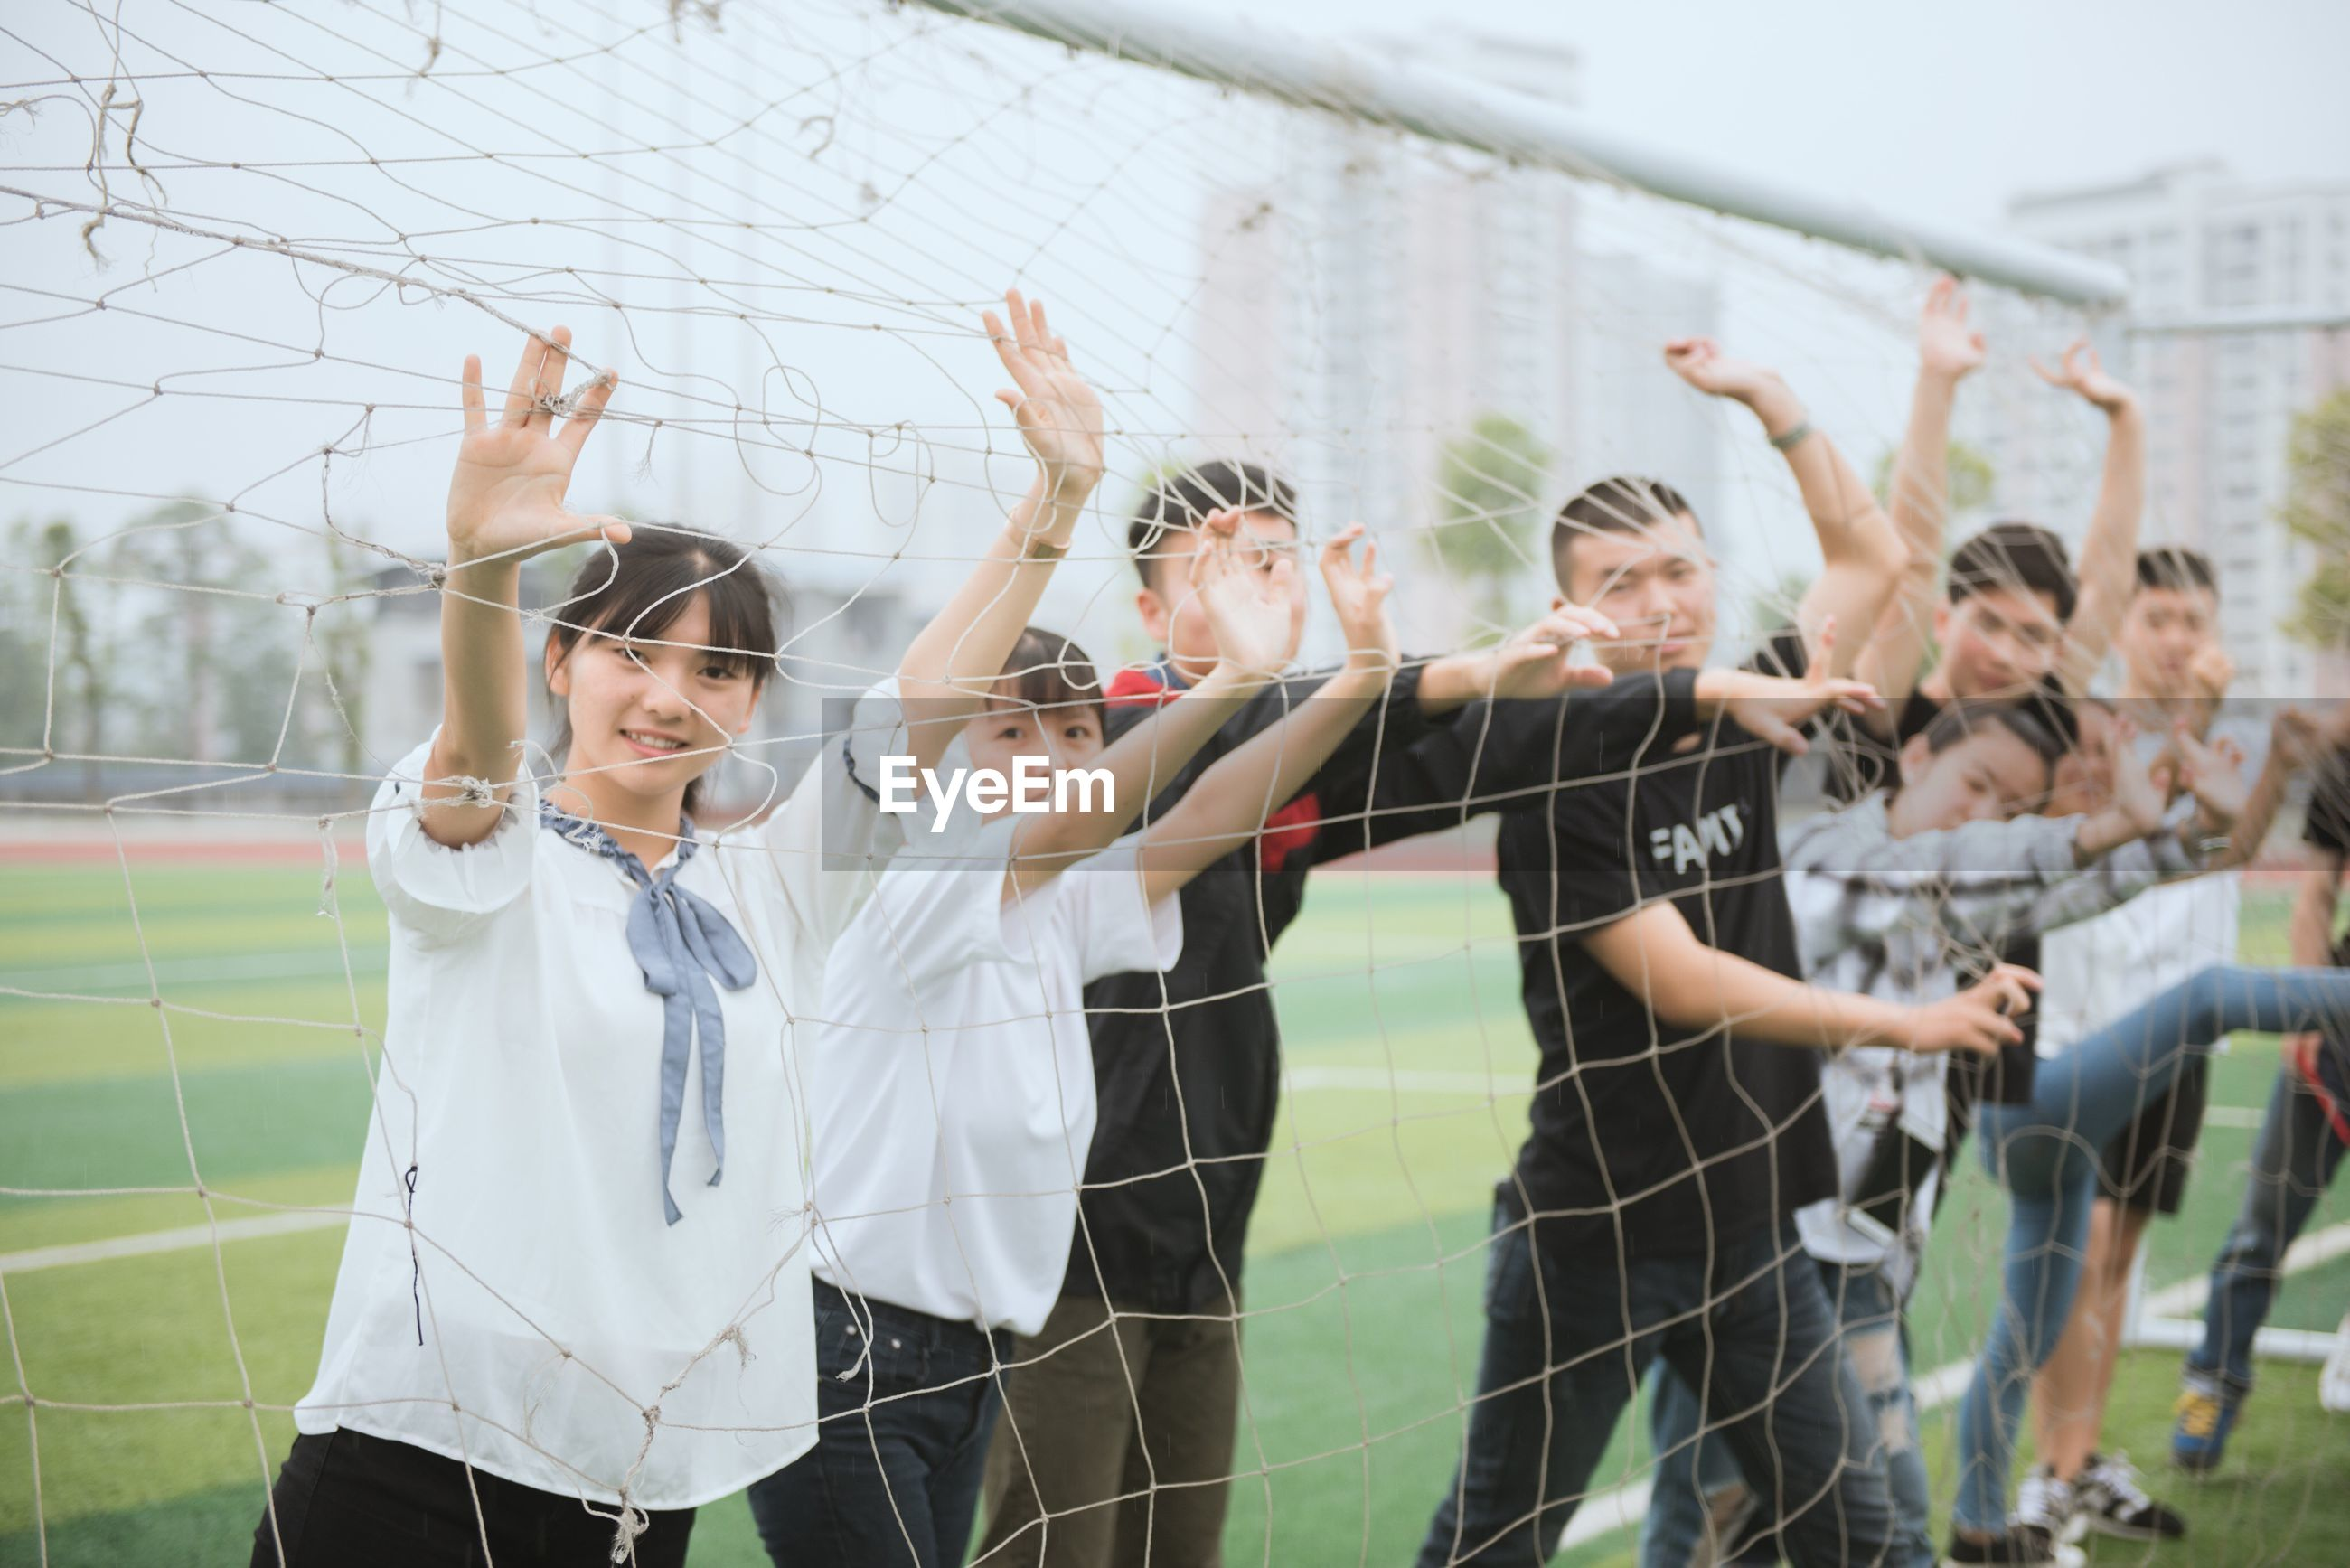 arms raised, real people, teenager, teenage girls, education, standing, togetherness, day, leisure activity, focus on foreground, high school, high school student, learning, outdoors, sport, young women, student, young adult, soccer field, junior high